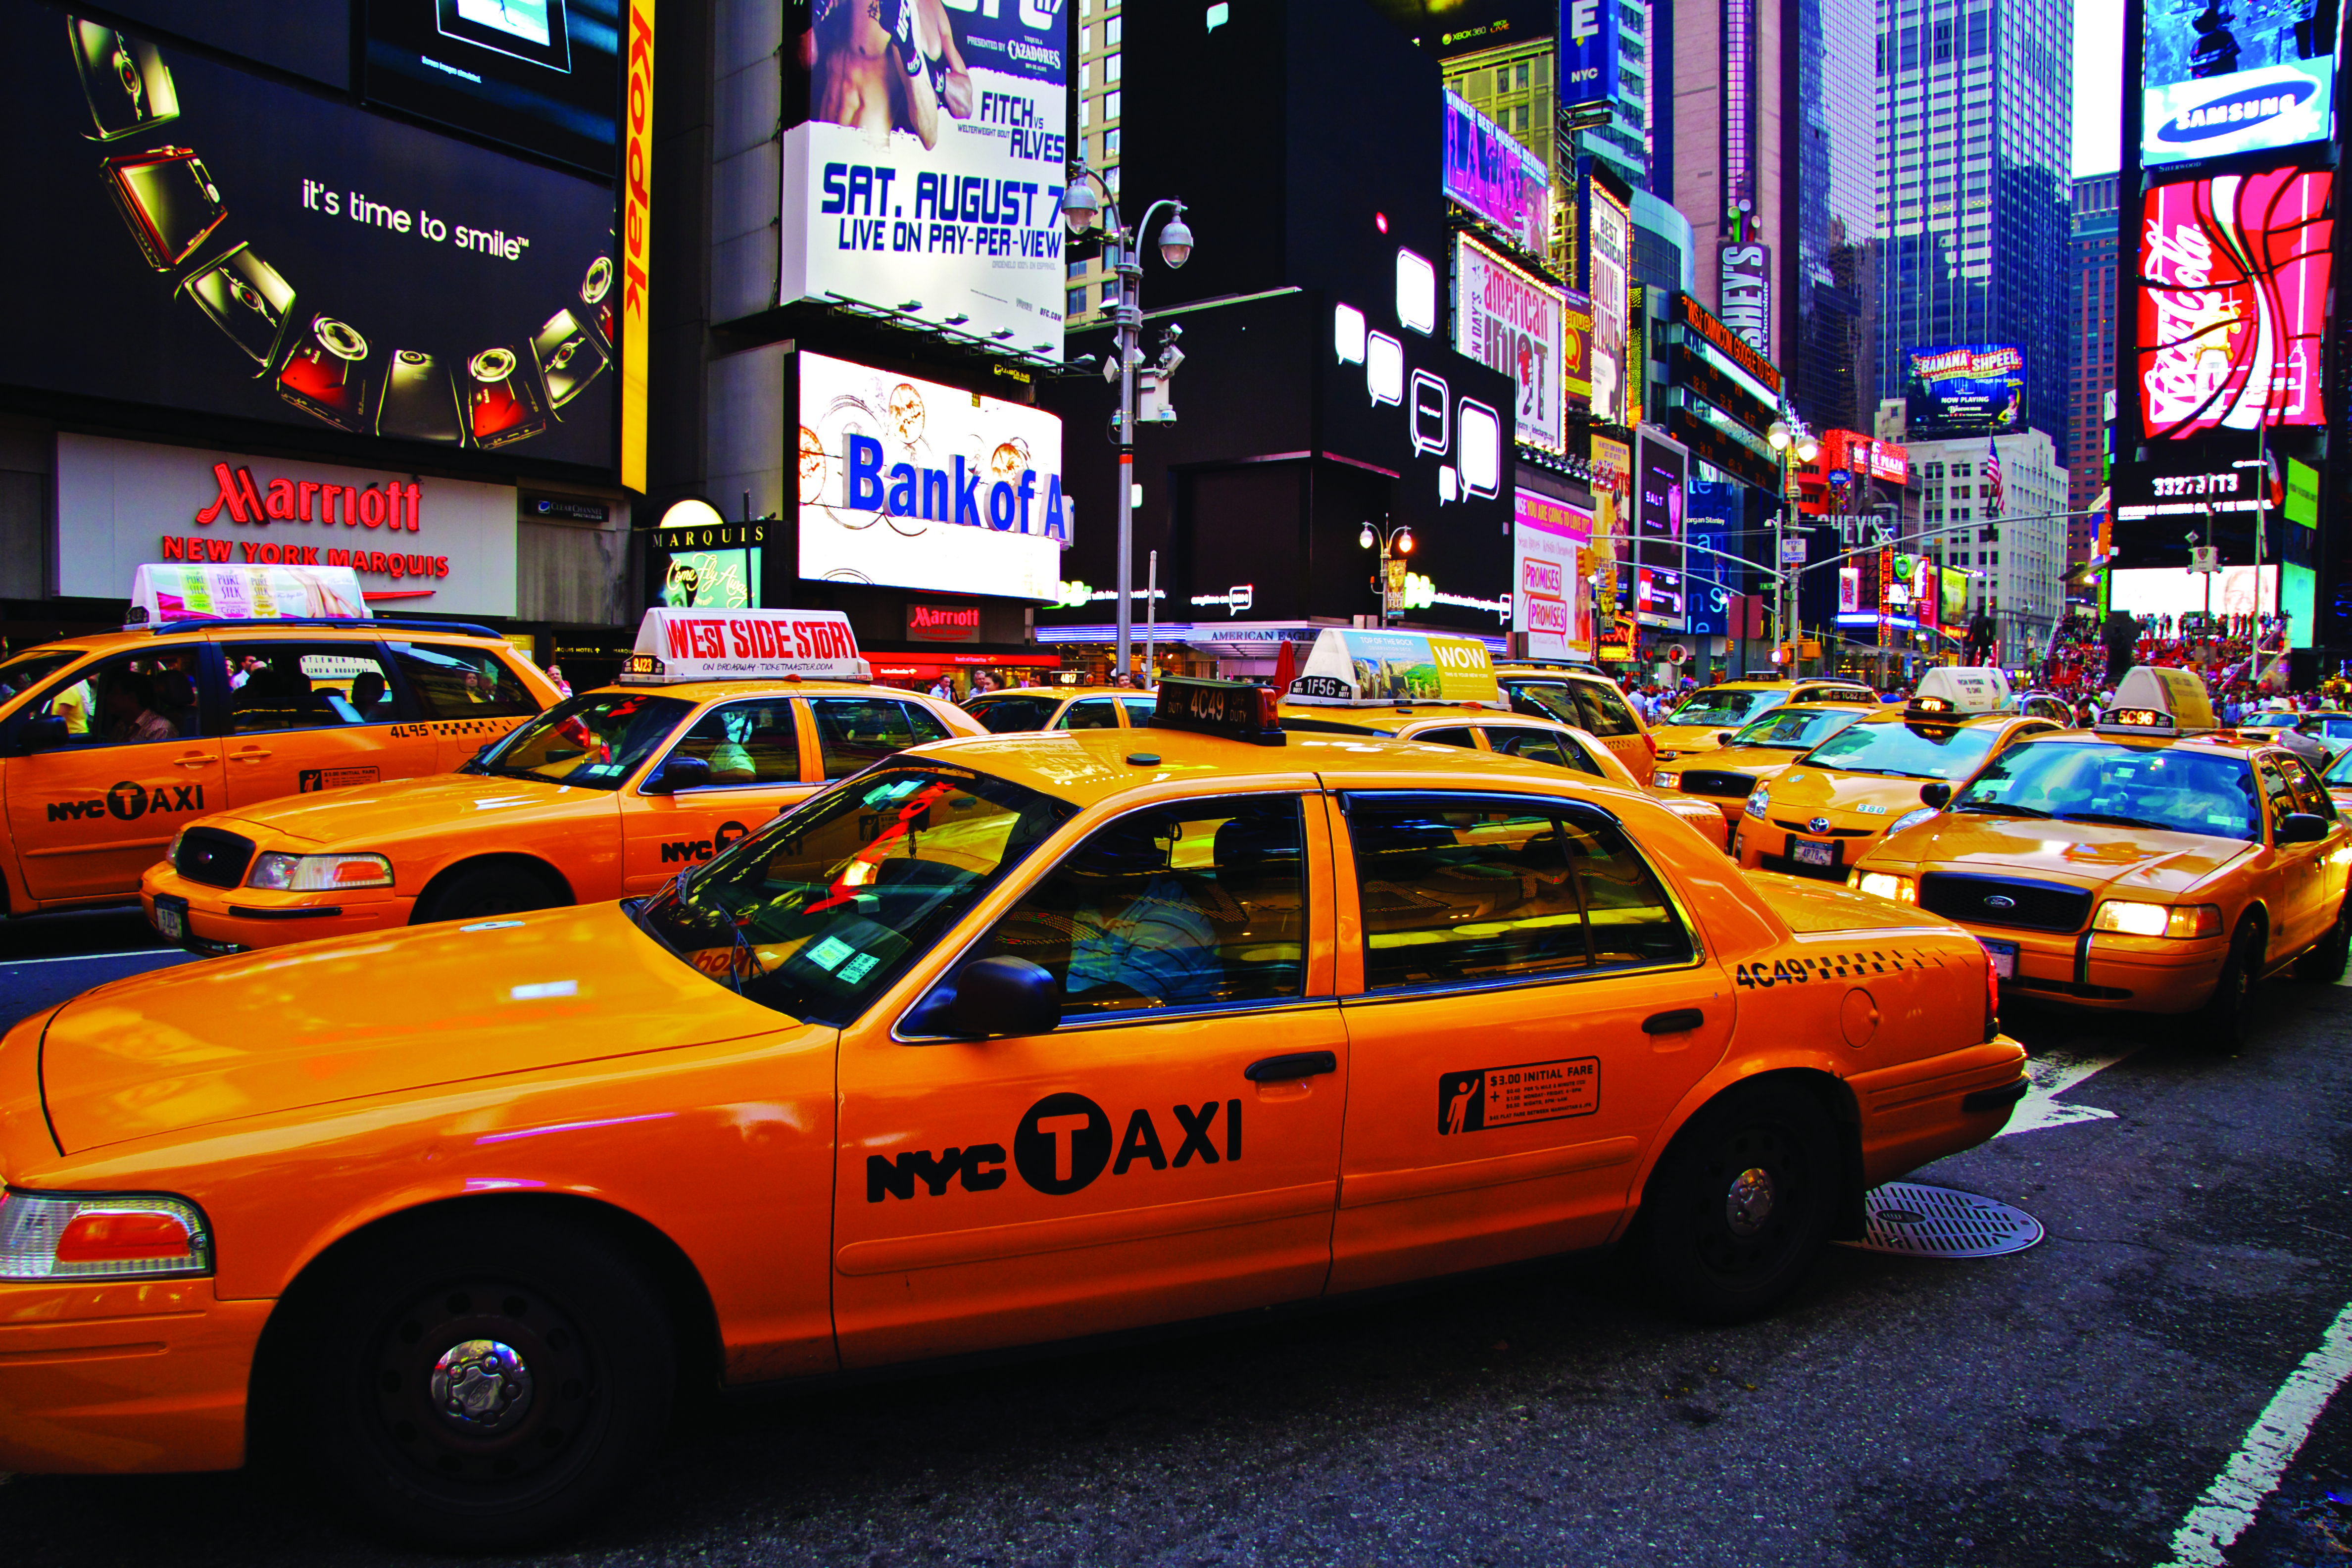 netloid_a-taxi-cab-driver-in-nyc-evaded-28k-in-tolls